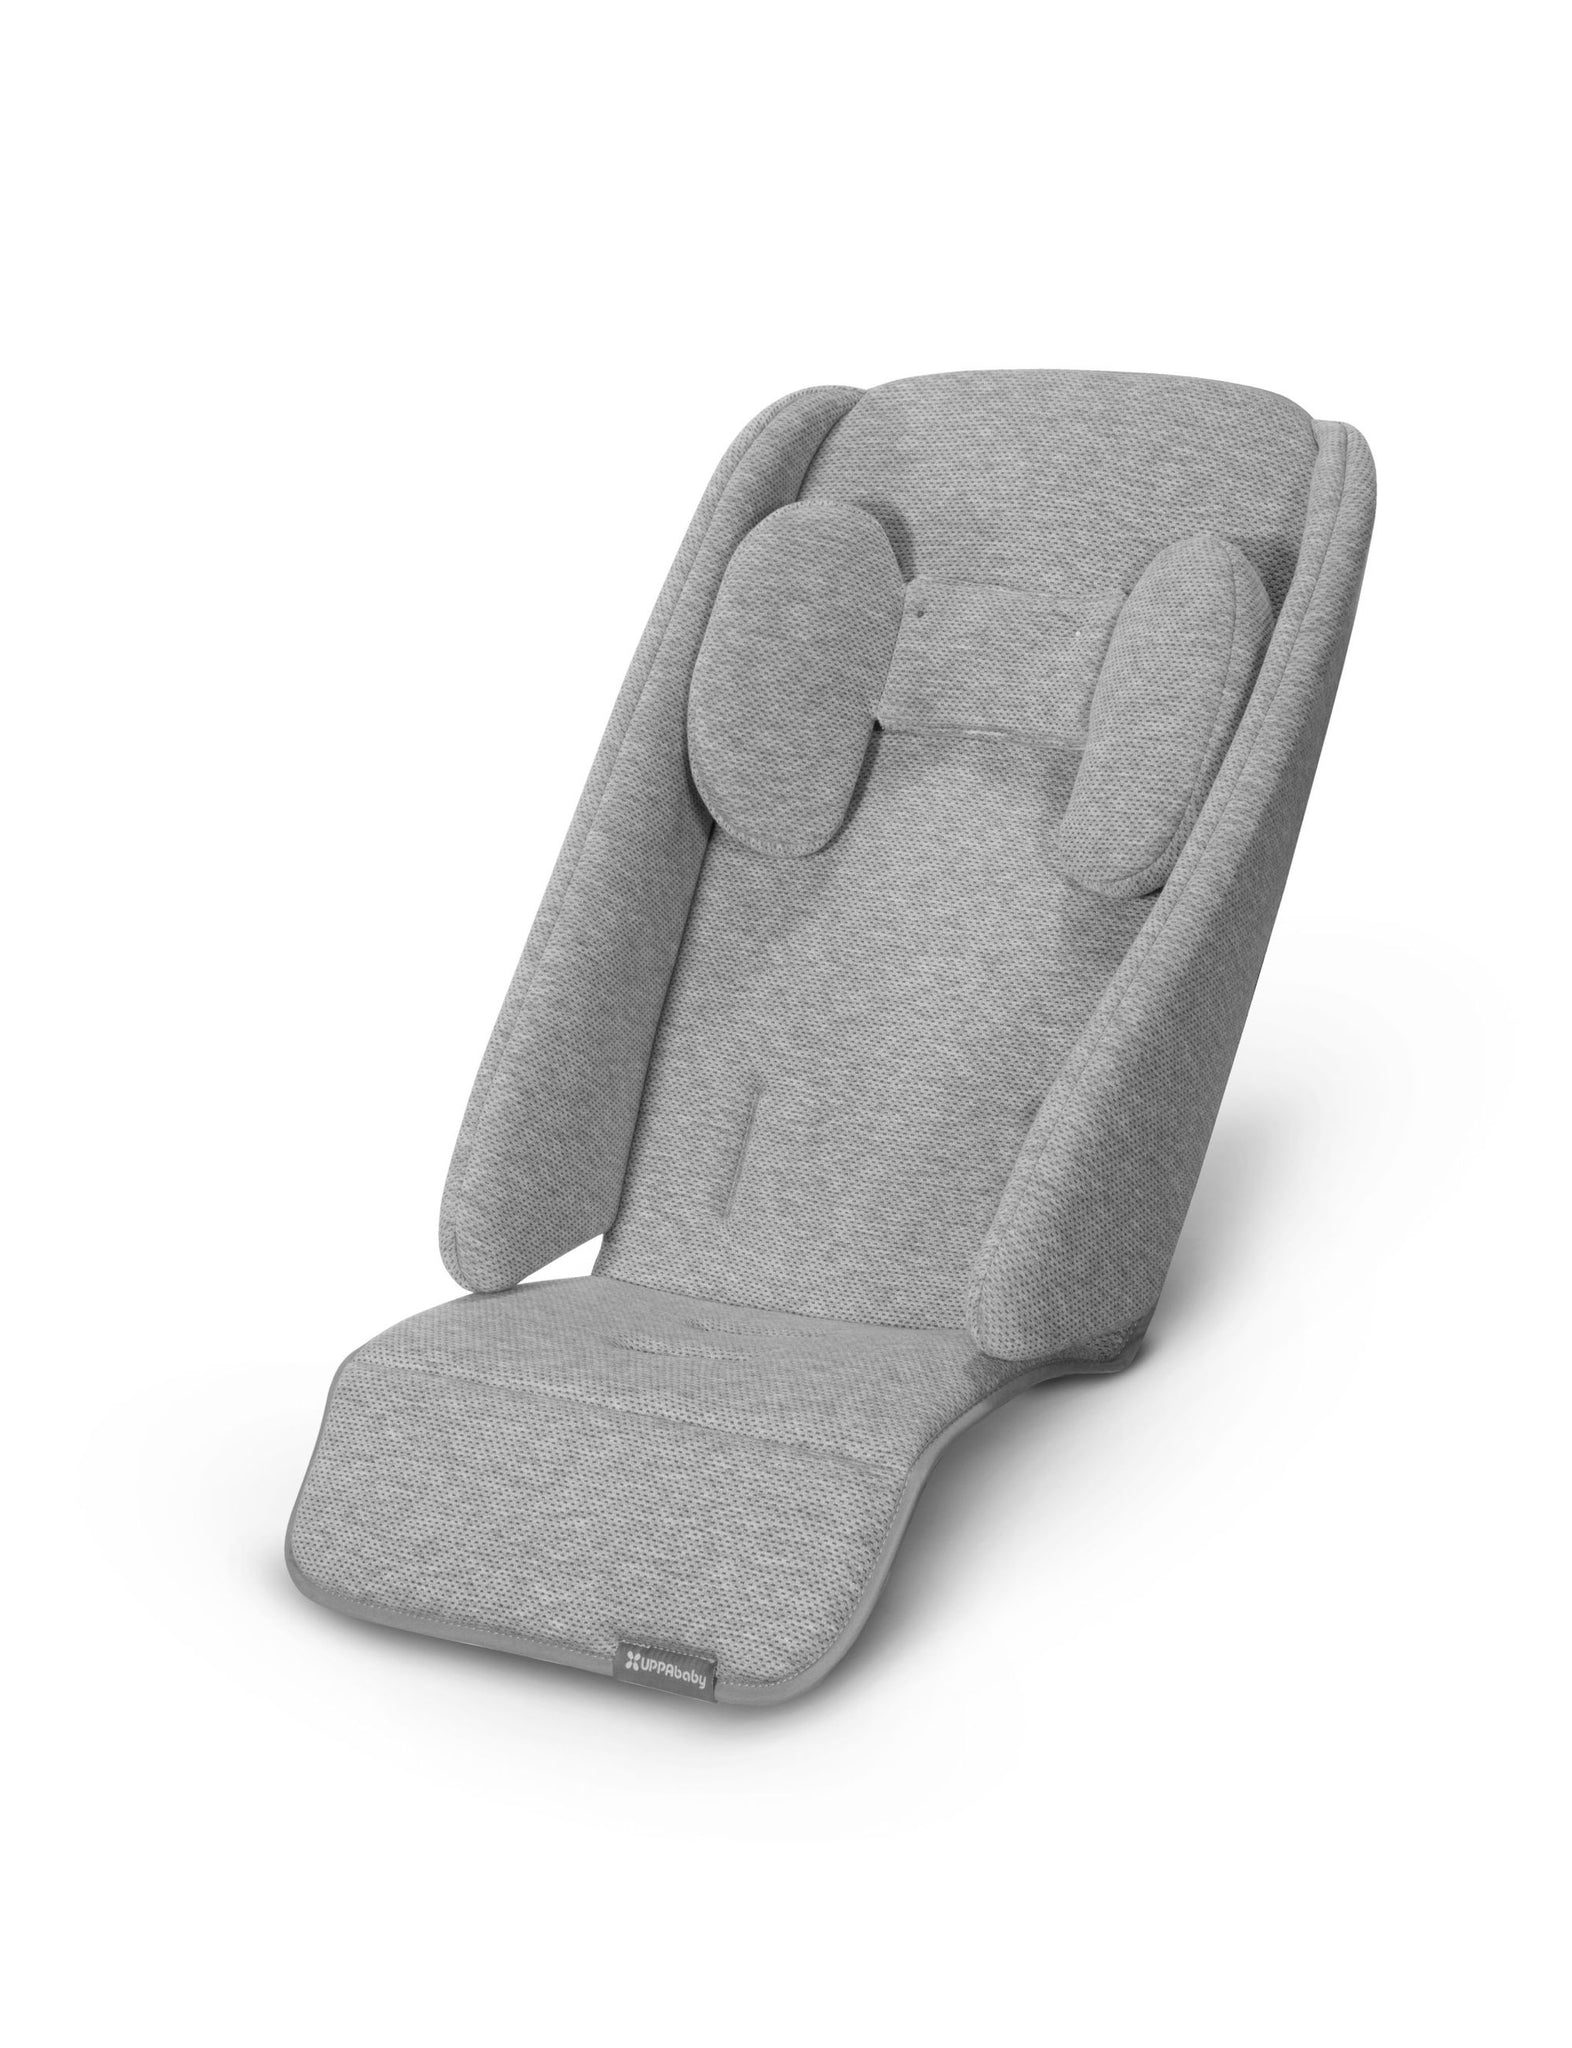 Infant SnugSeat